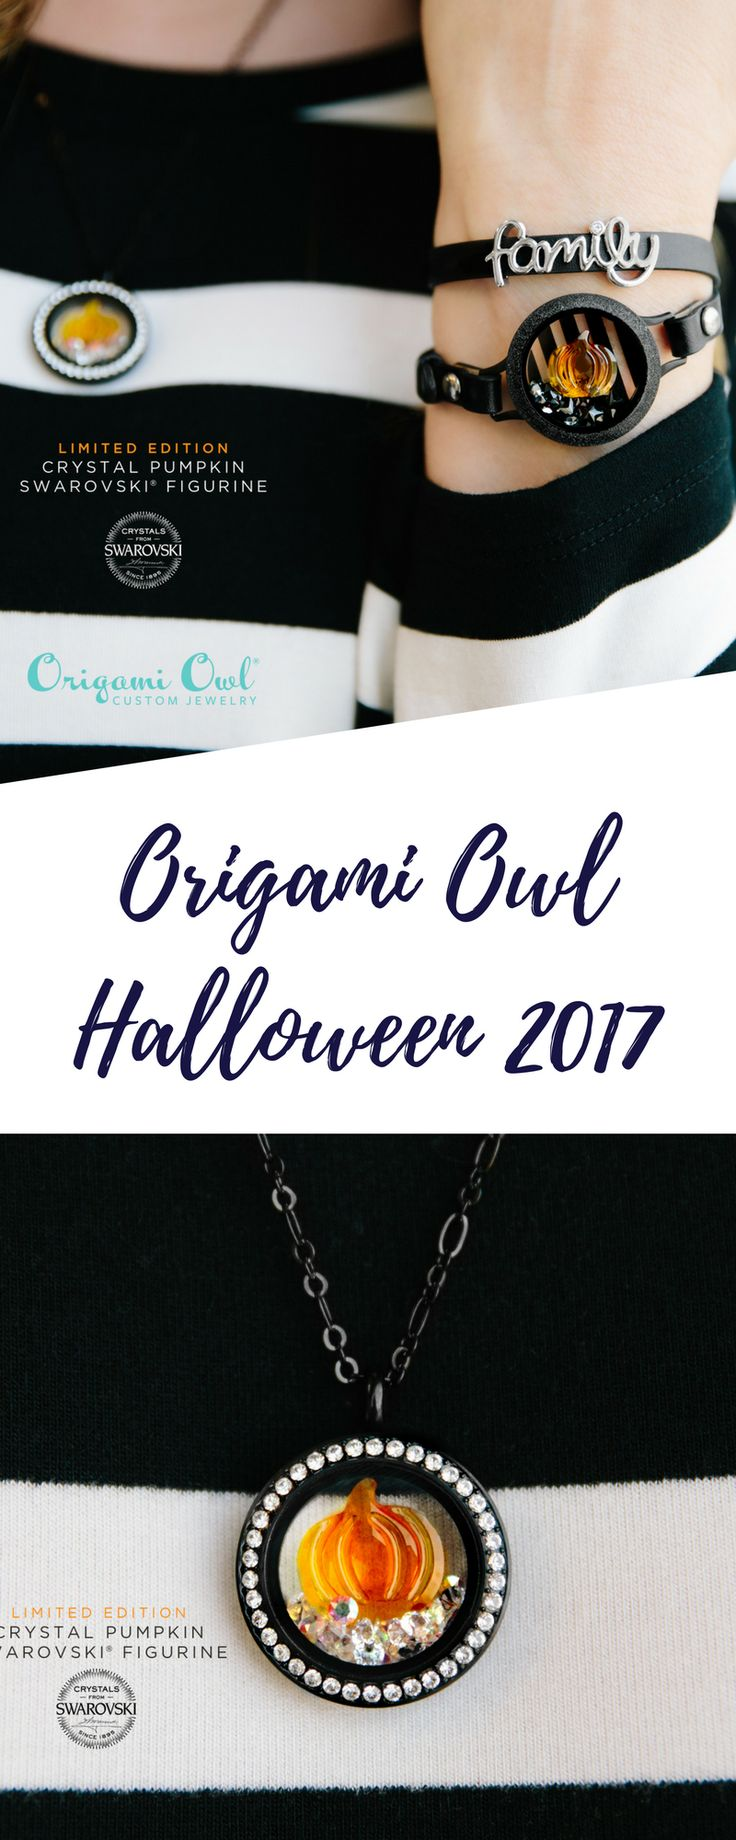 Click to be the first to read all about the Origami Owl Halloween Collection for 2017. The new charms, the new lockets, the new looks! Email kristy@foreversparkly.com for a free gift!